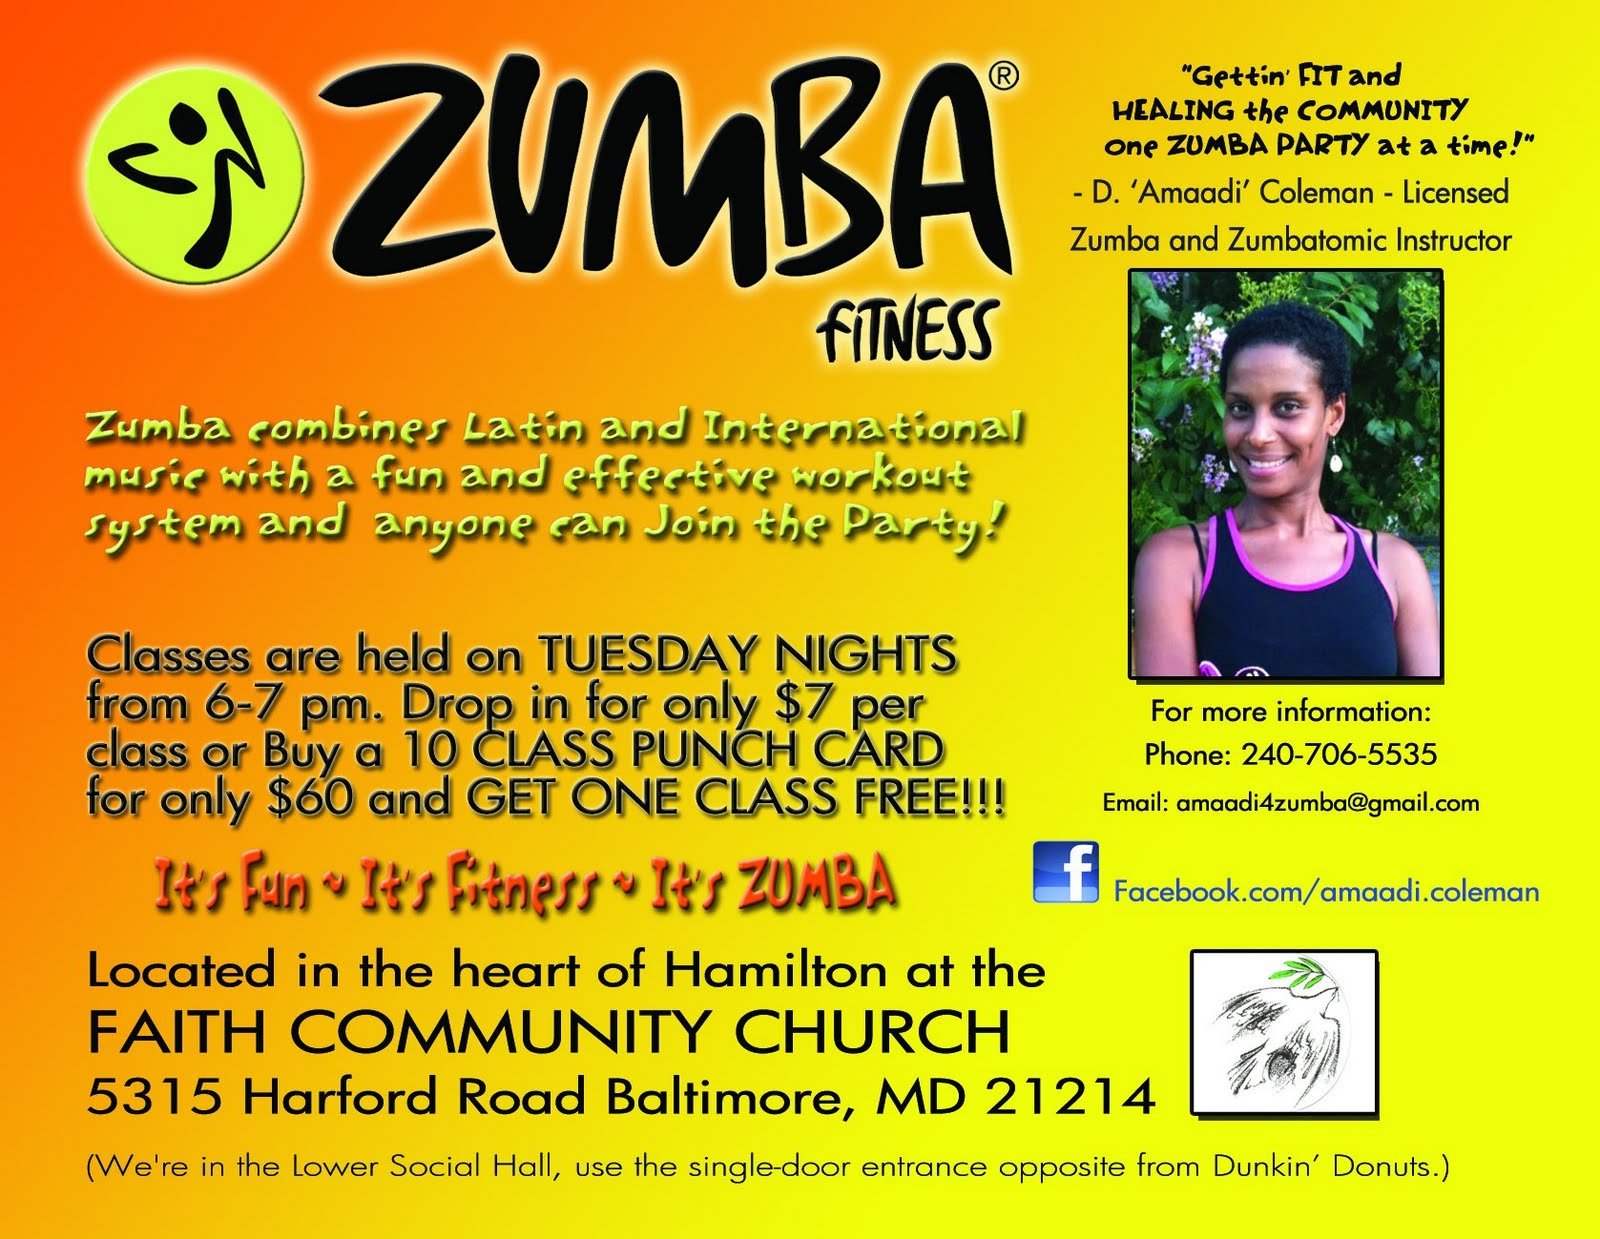 Zumba Instructor Business Cards http://hamiltonlauravillemainstreet.blogspot.com/2011_08_01_archive.html